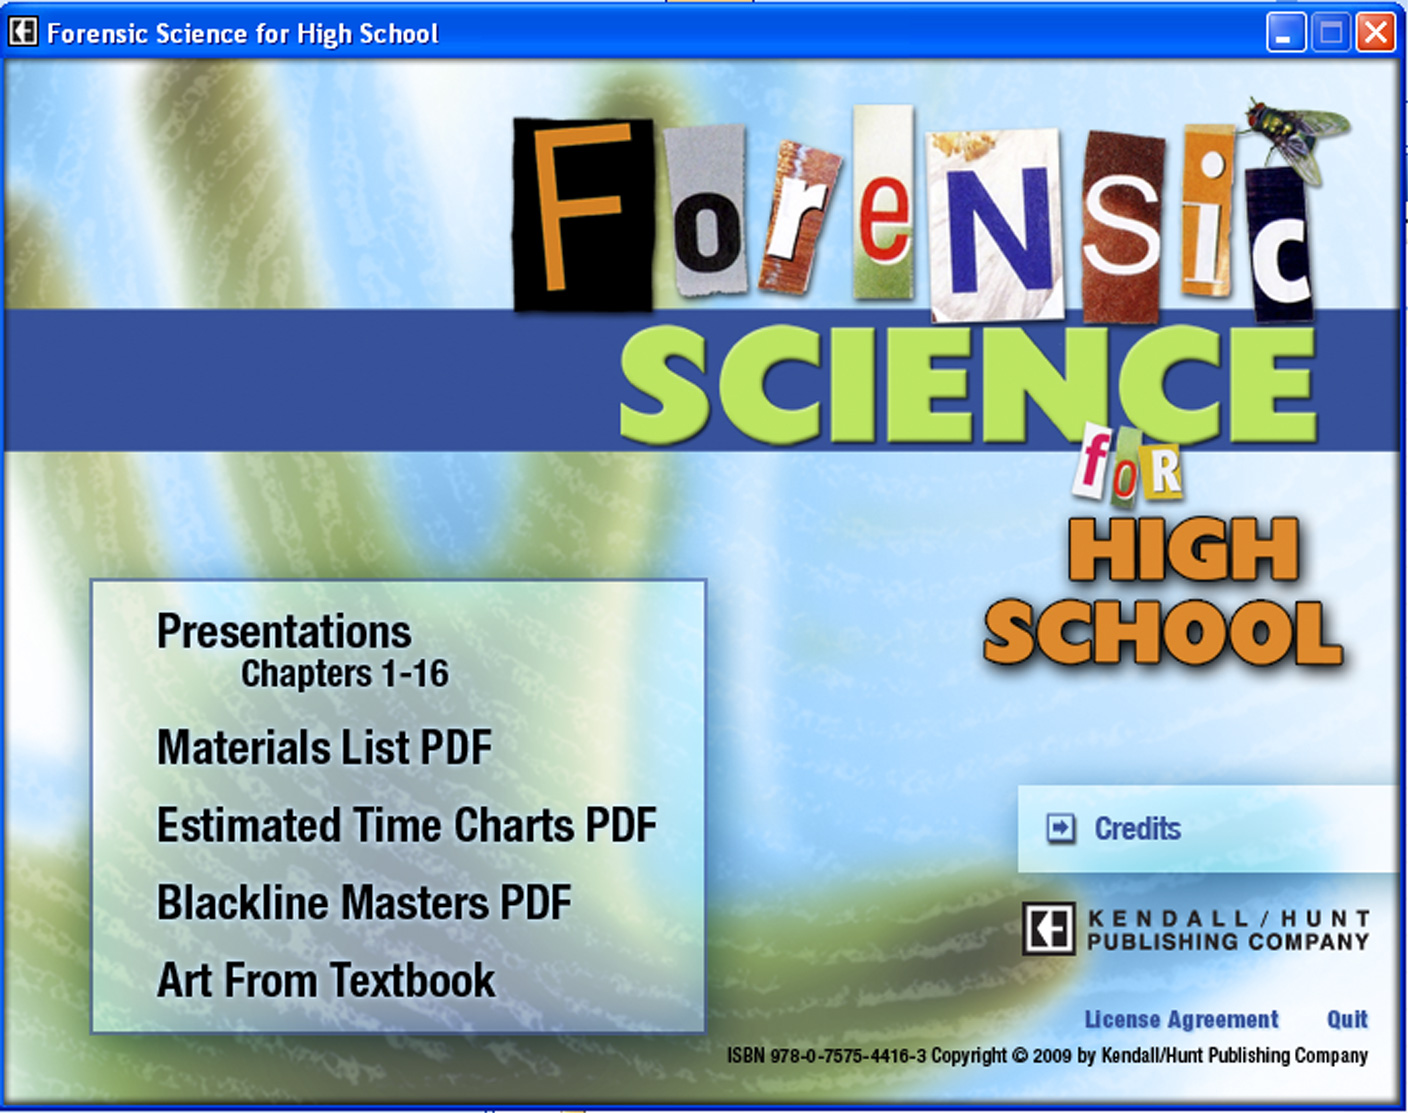 High School Forensic Science Test Questions